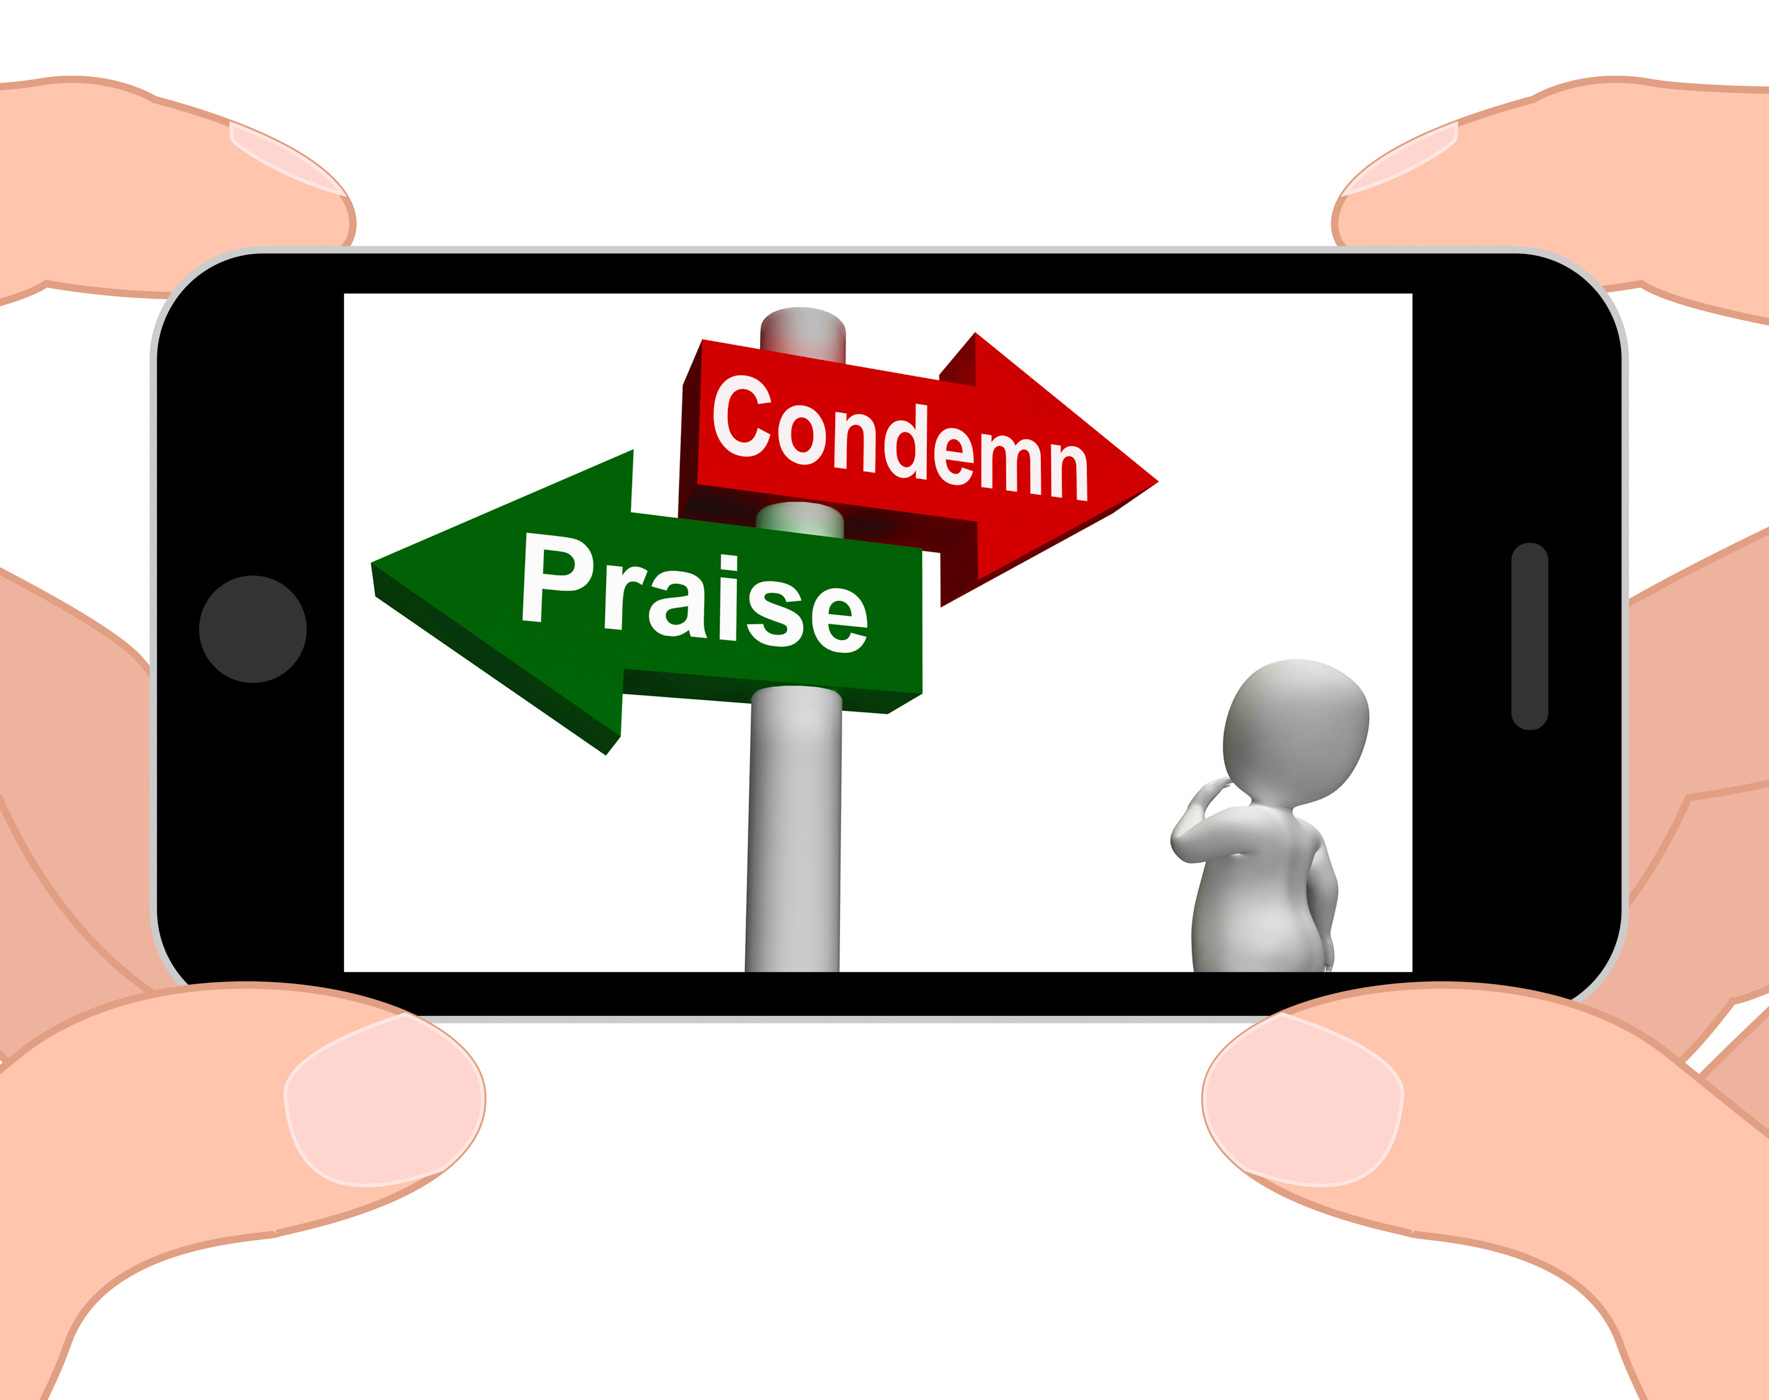 Condemn praise signpost displays appreciate or blame photo